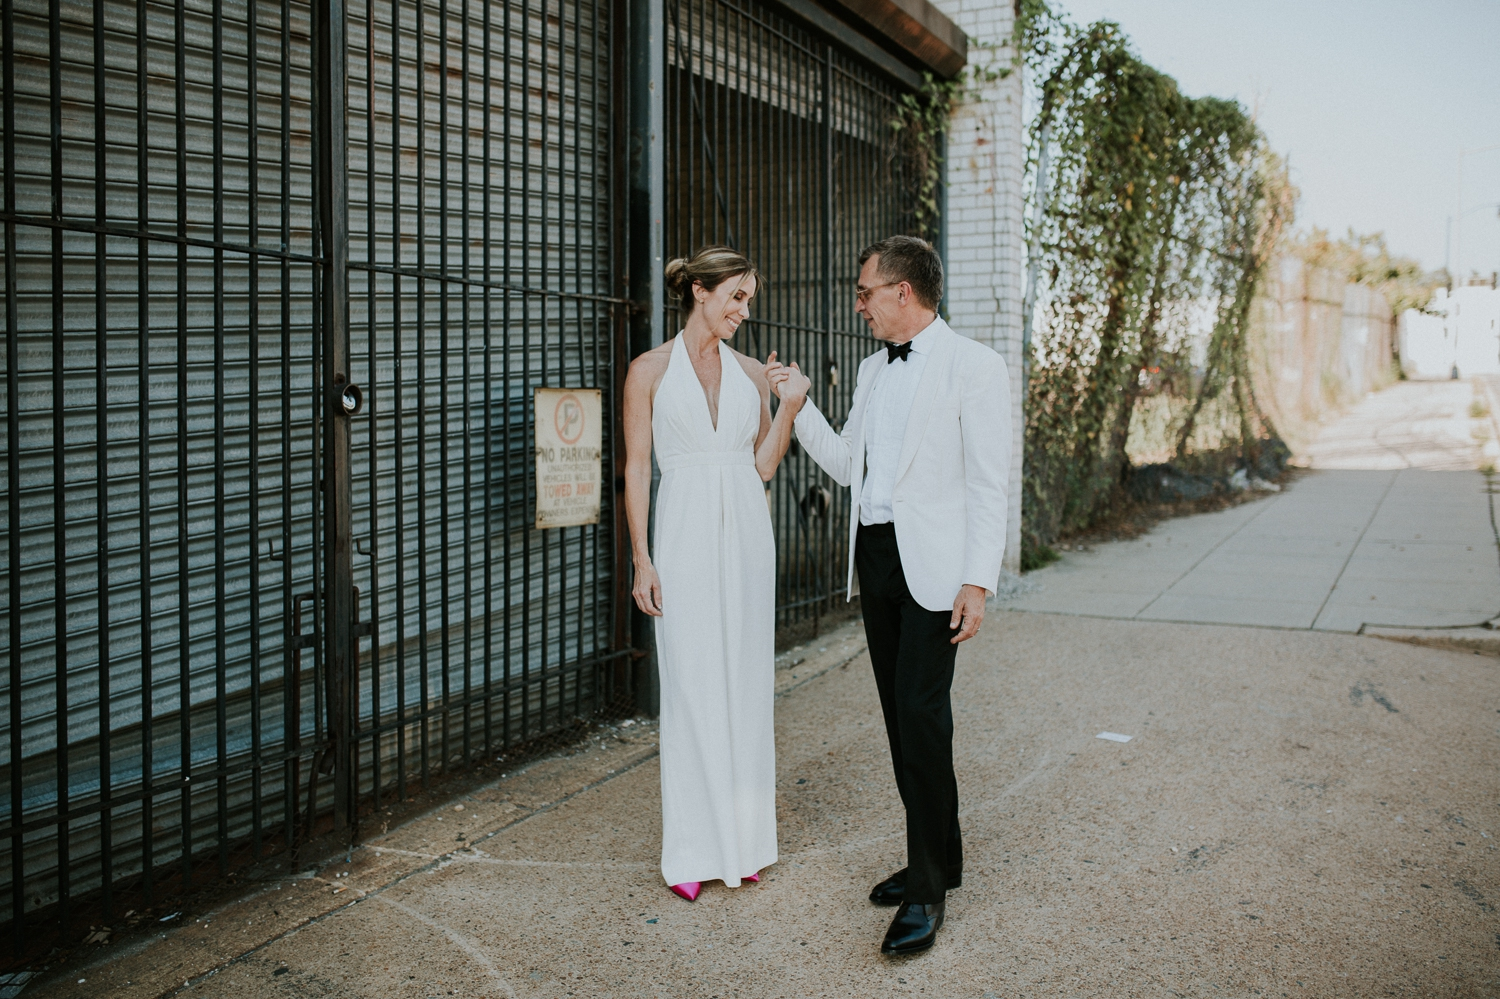 washington-dc-union-market-wedding-elopement-photography 25.jpg